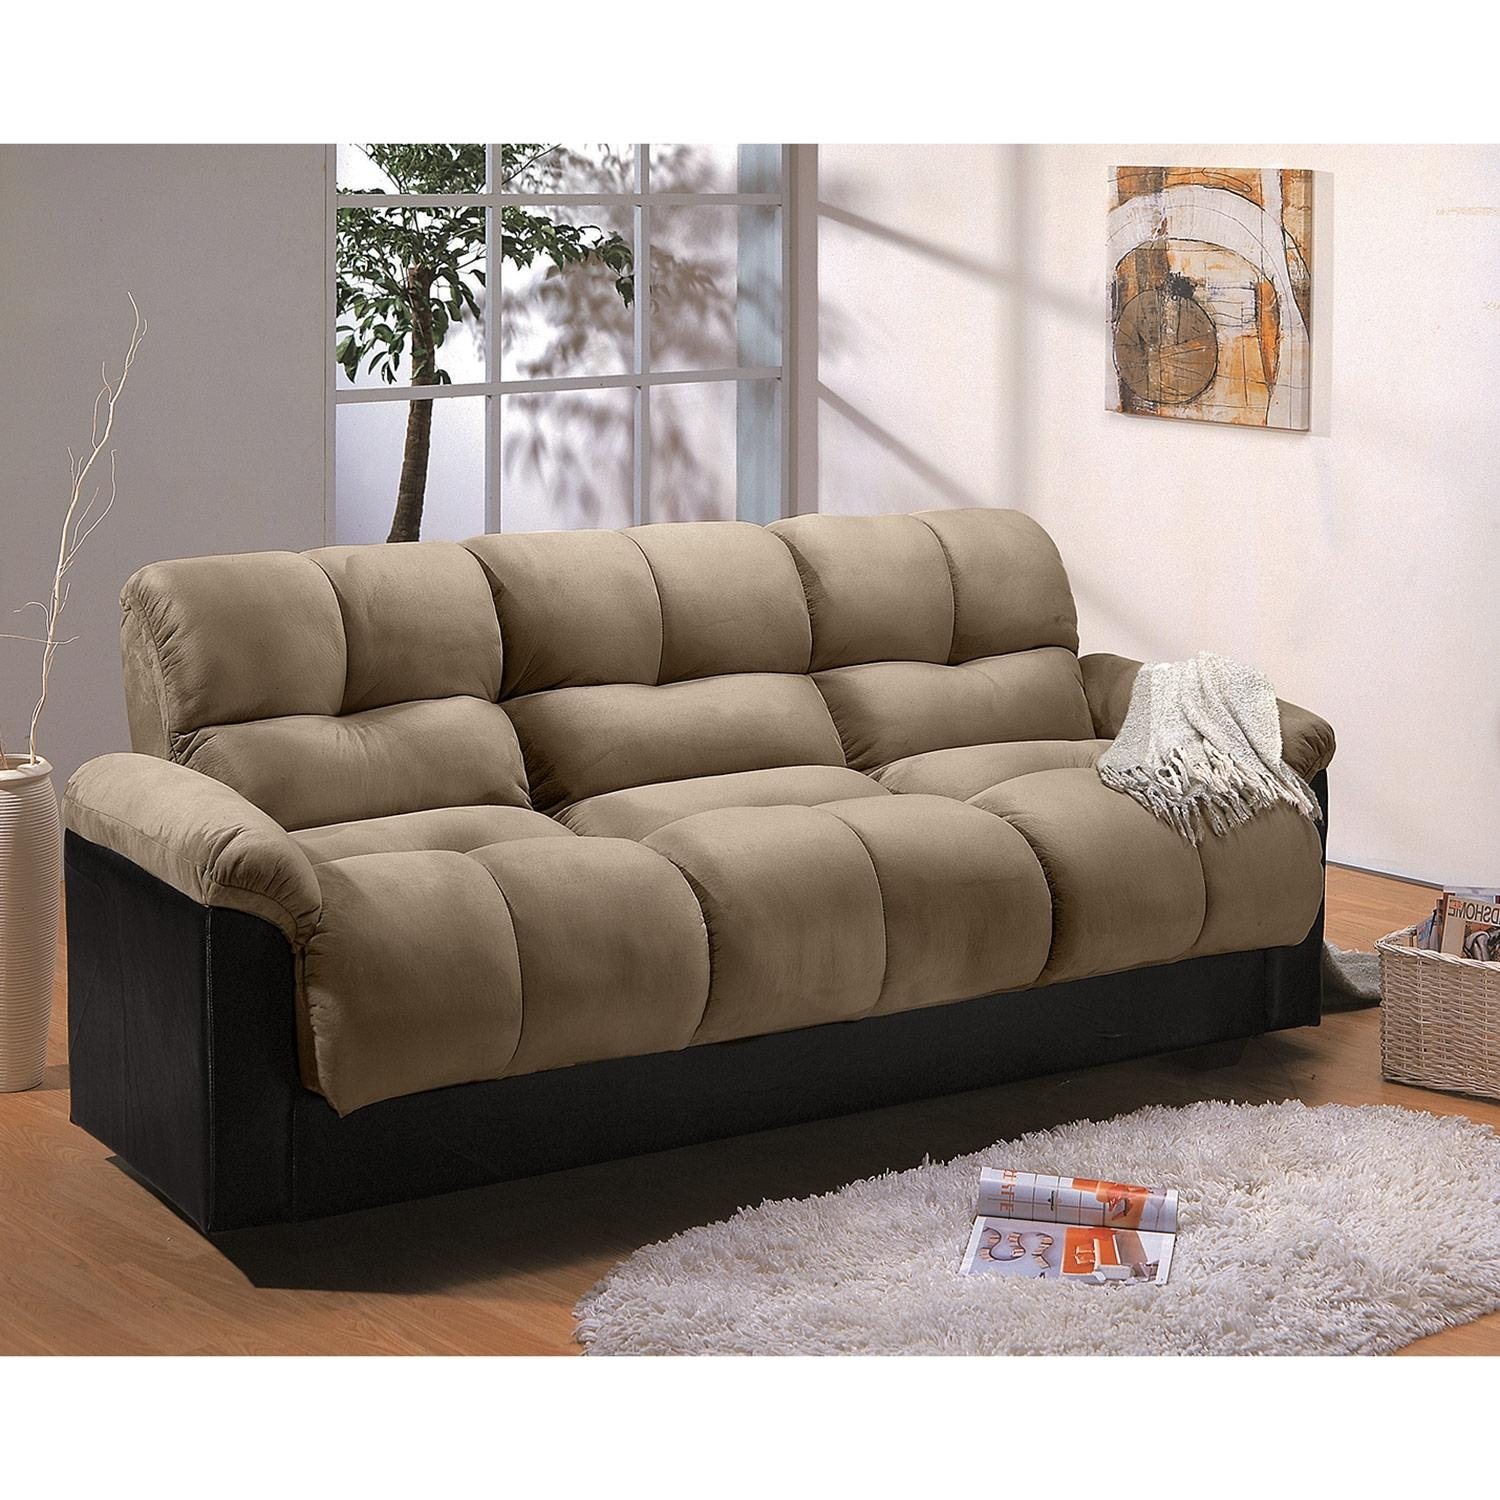 Futon Sofa Bed With Storage : Futon Sofa Bed Ideas – Home Decor With Regard To Sofa Beds With Storage Underneath (View 18 of 20)